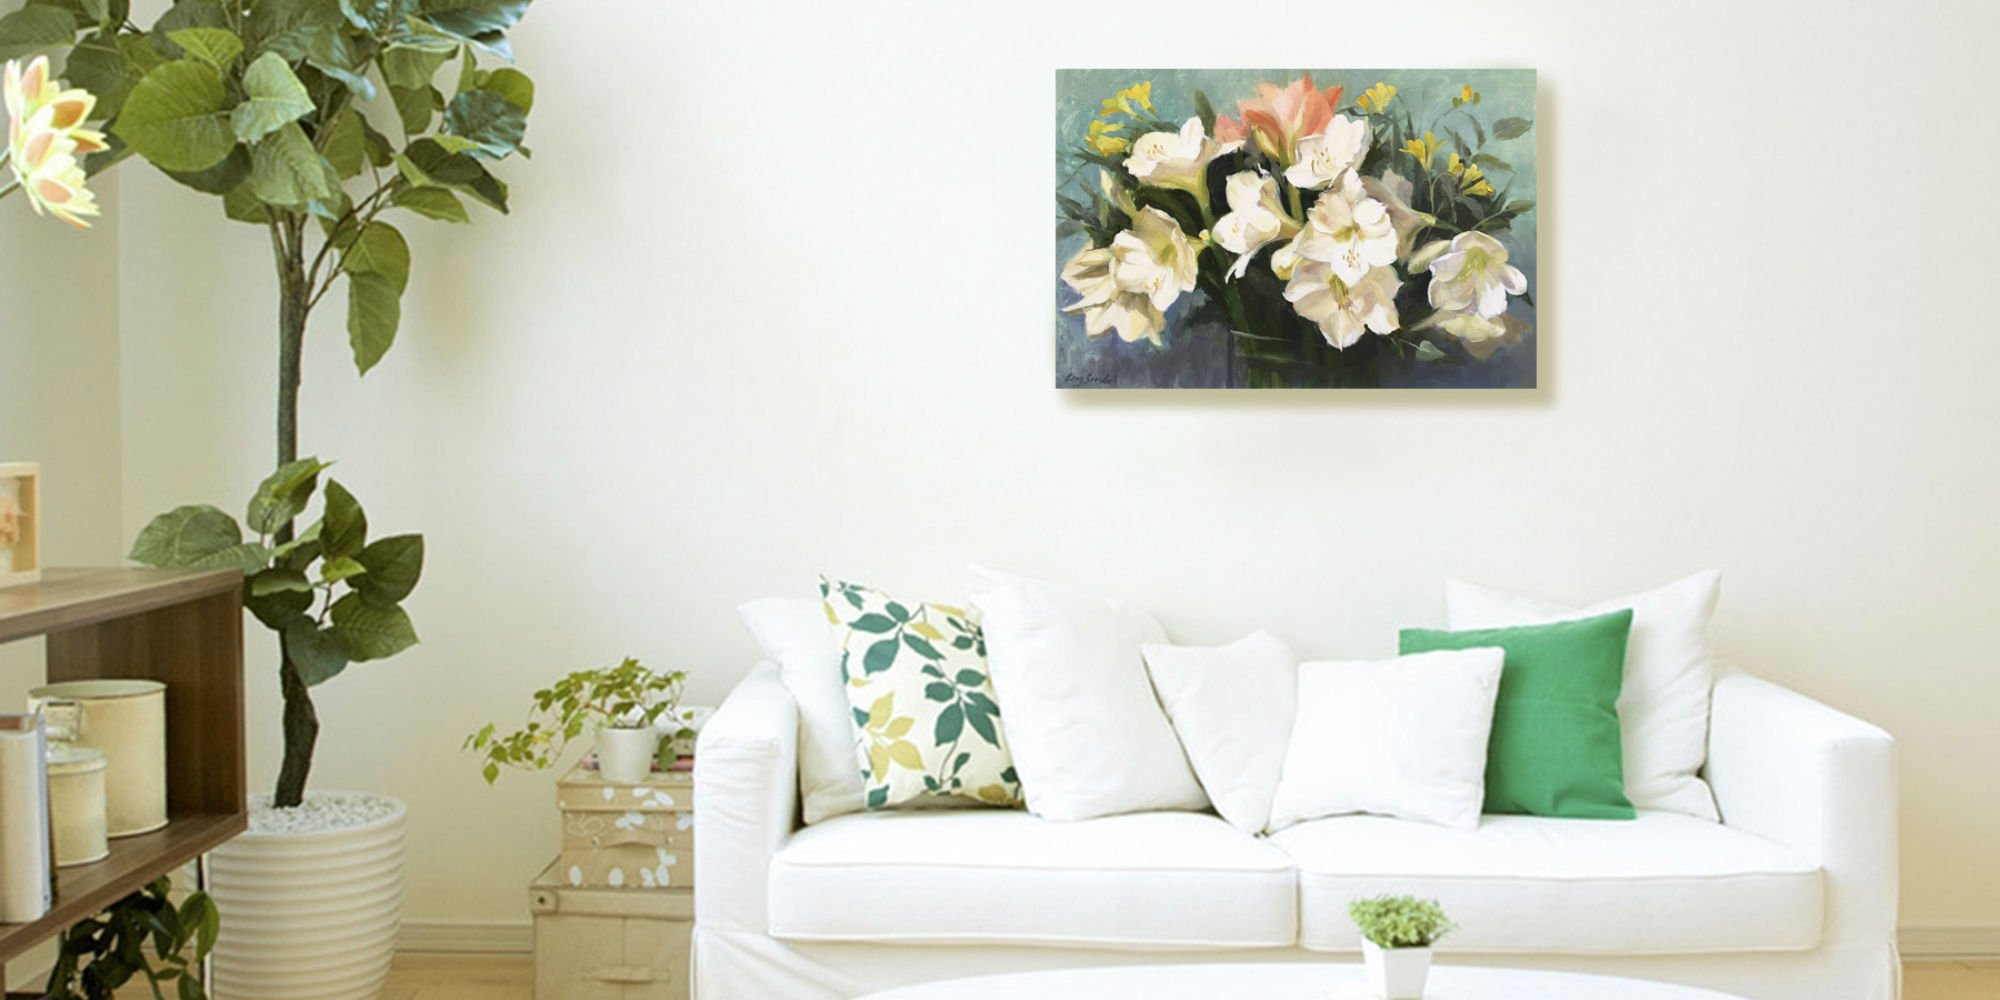 Botanical art: Bring the beauty of nature into your home